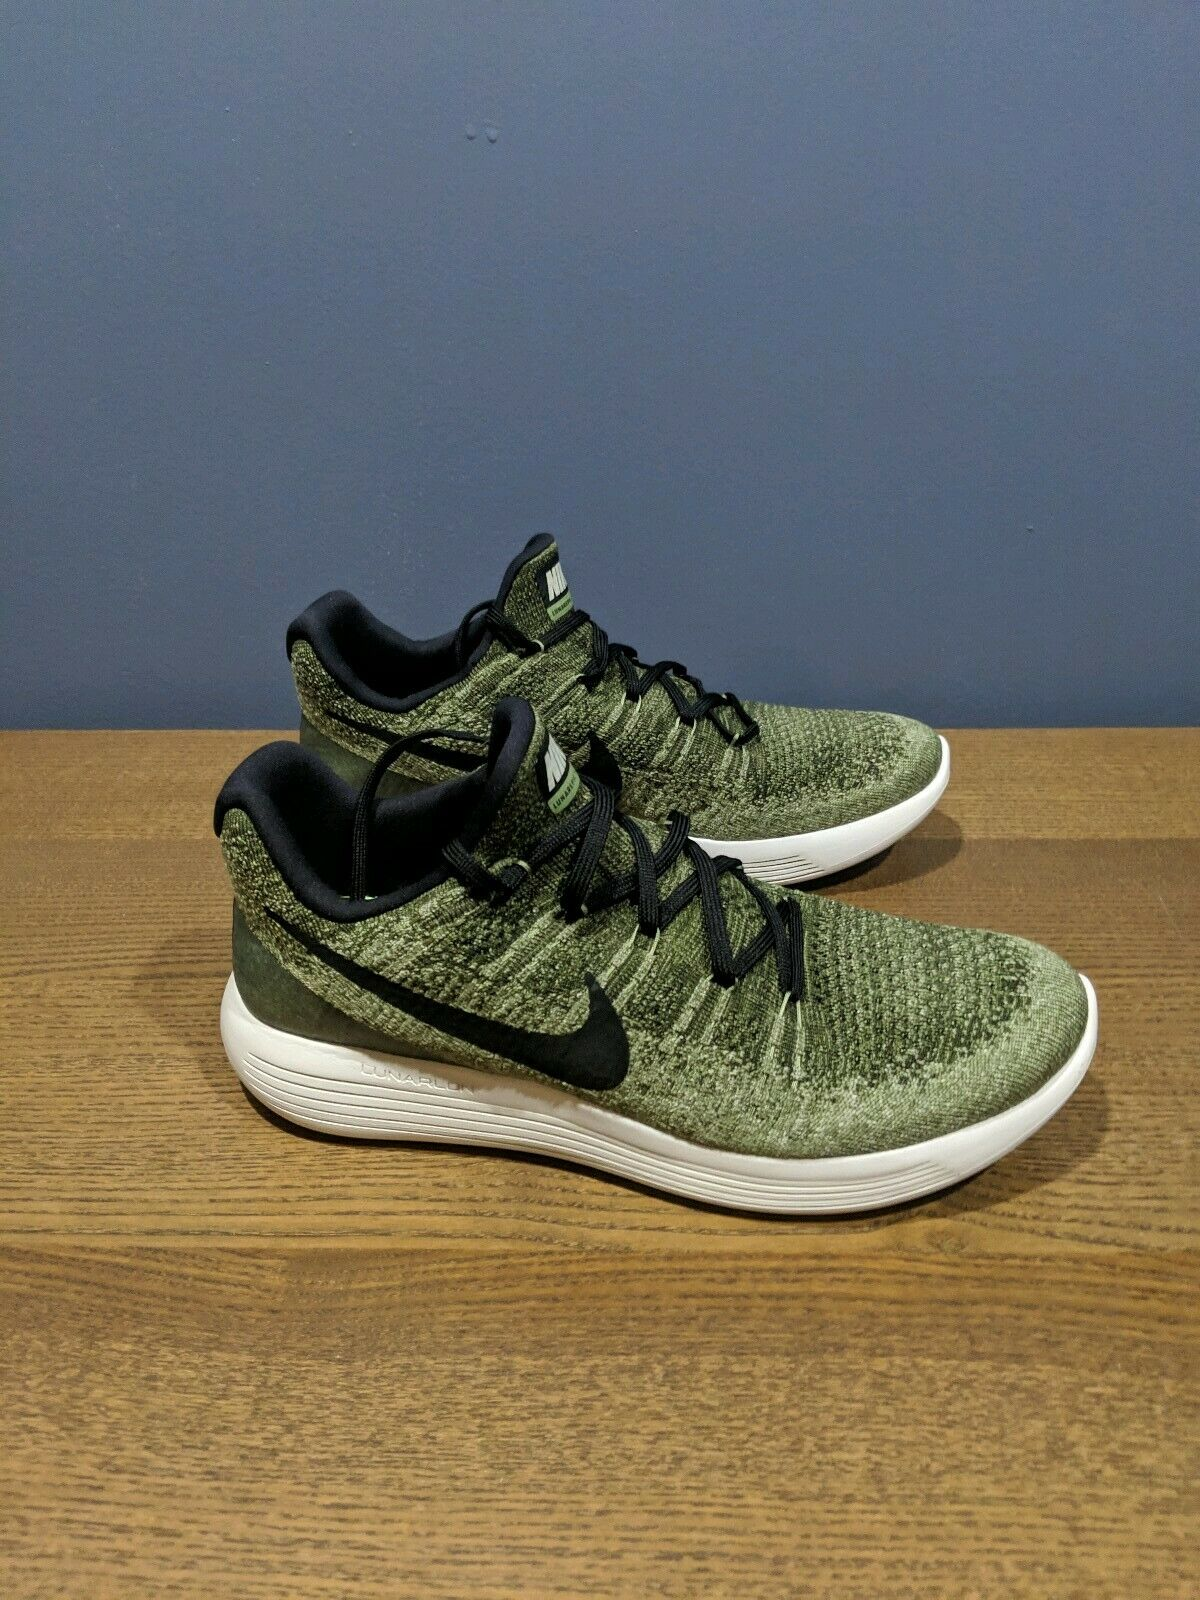 Nike Men's Lunarepic Low Flyknit 2  Green Black Palm Green Running shoes size 11